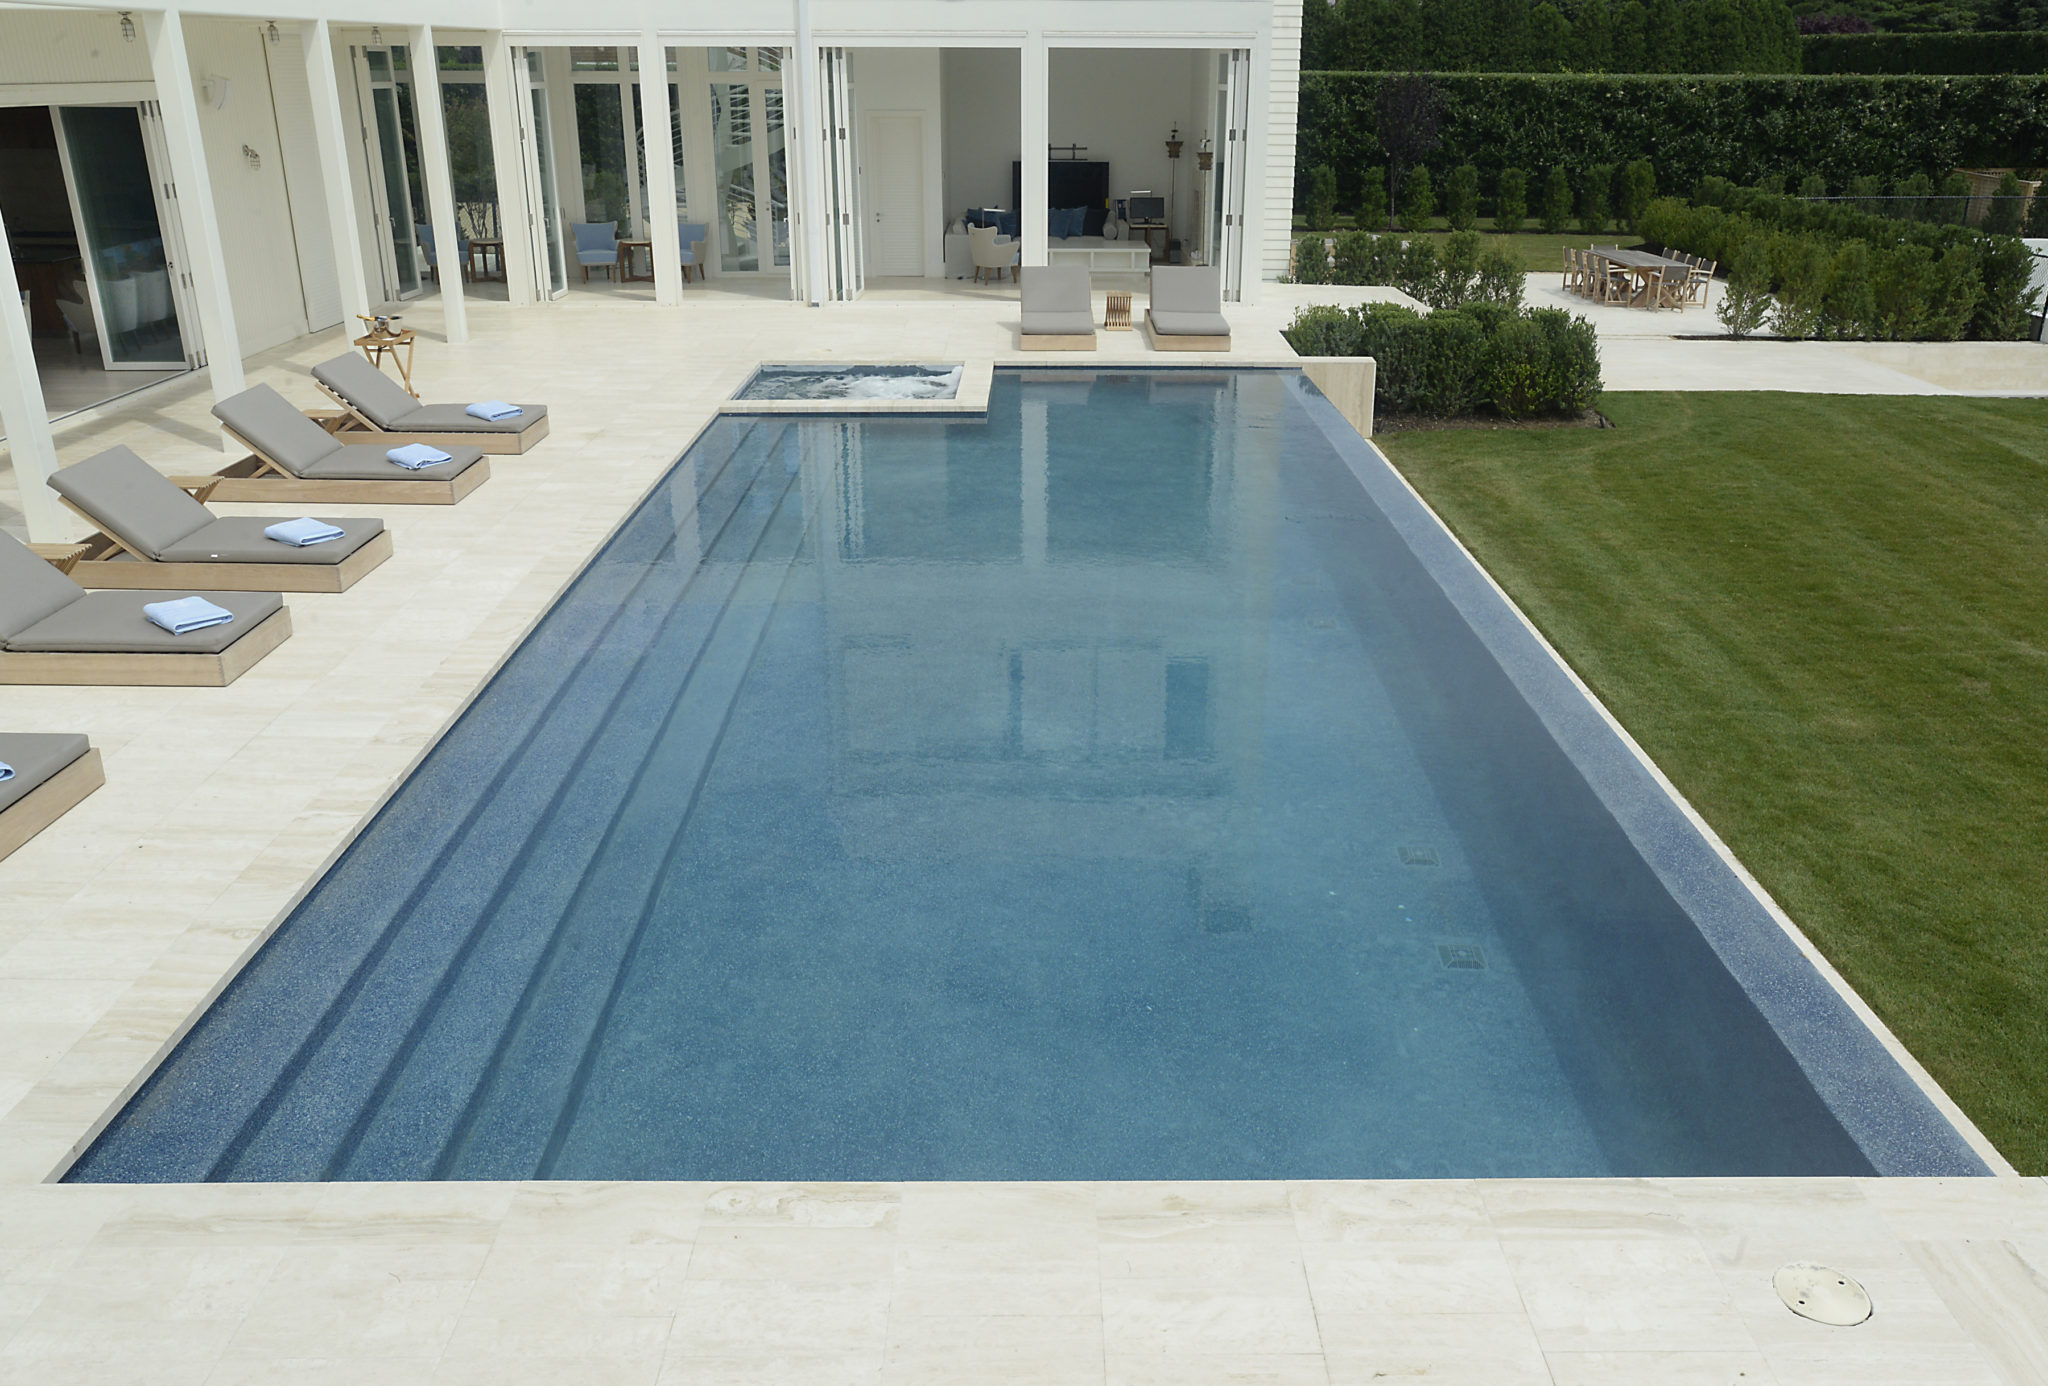 Award winning negative edge pool jack anthony swimming pools for Pool negative edge design